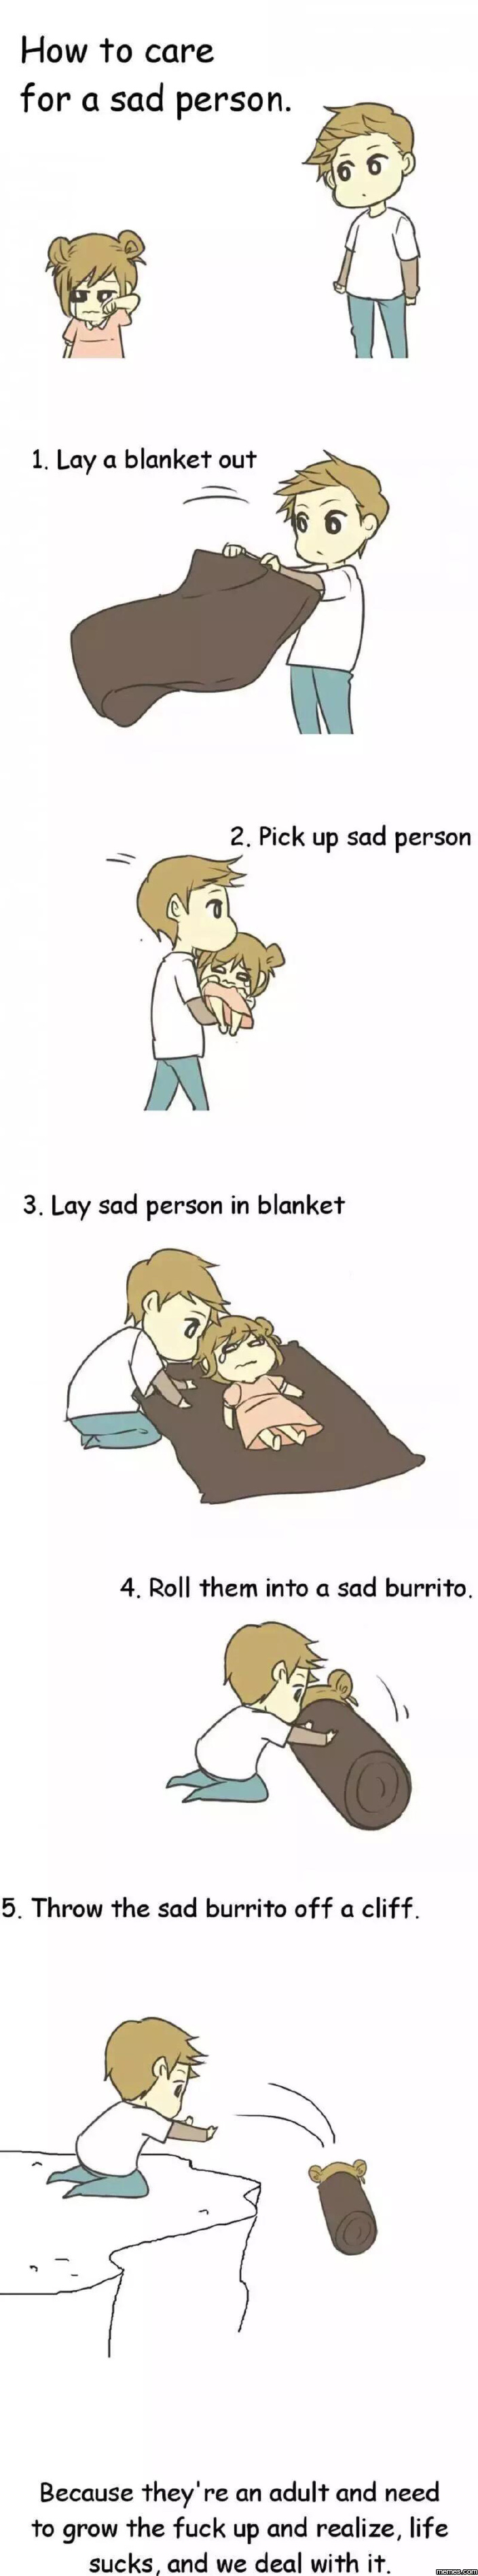 How to care for a sad person…